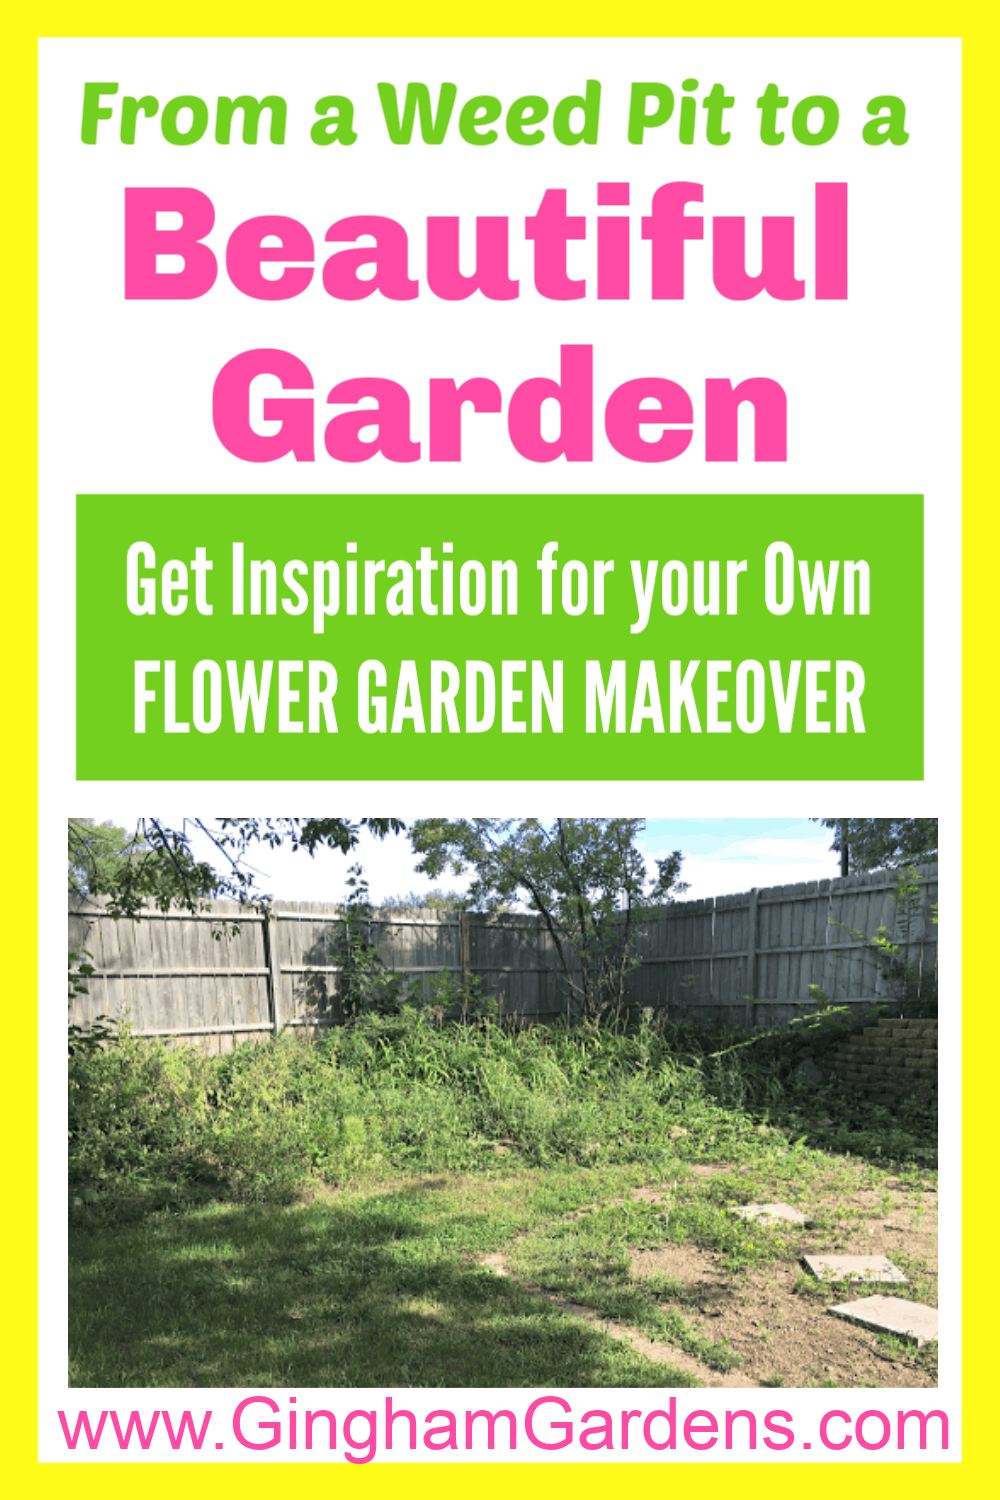 Image of a weed pit with text overlay - From a Weed Pit to a Beautiful Garden